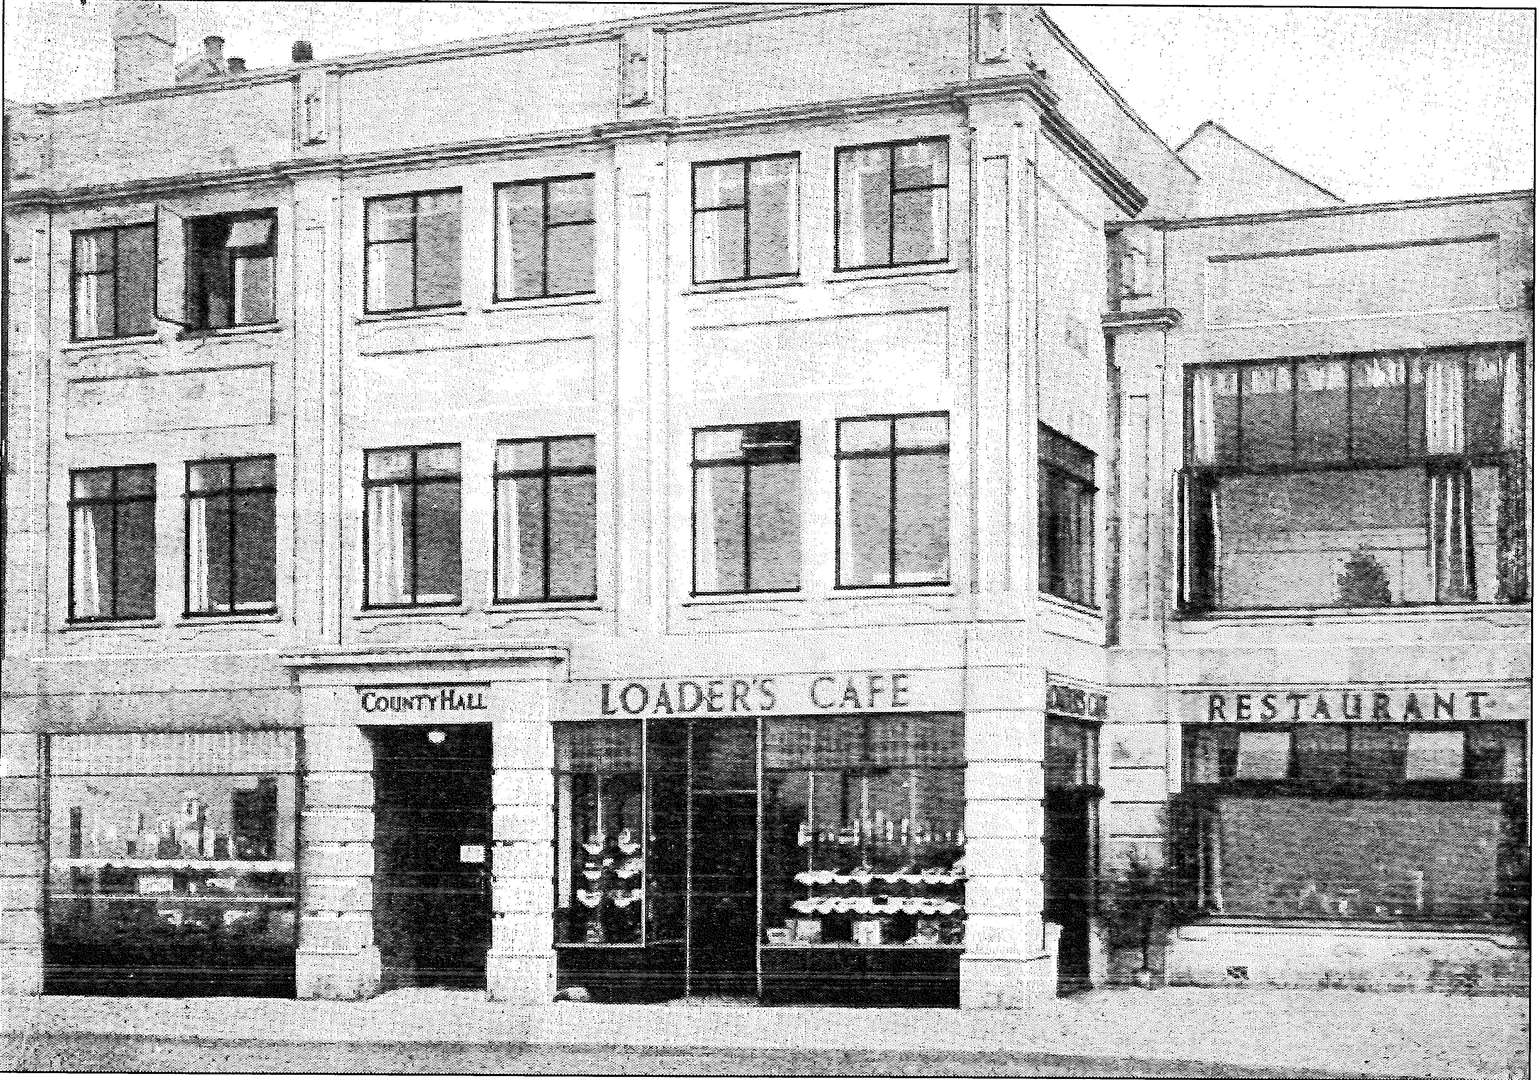 The building was previously home to Loader's Cafe and Restaurant, built in 1933 (Picture: Herne Bay Historical Records Society / John Fishpool)